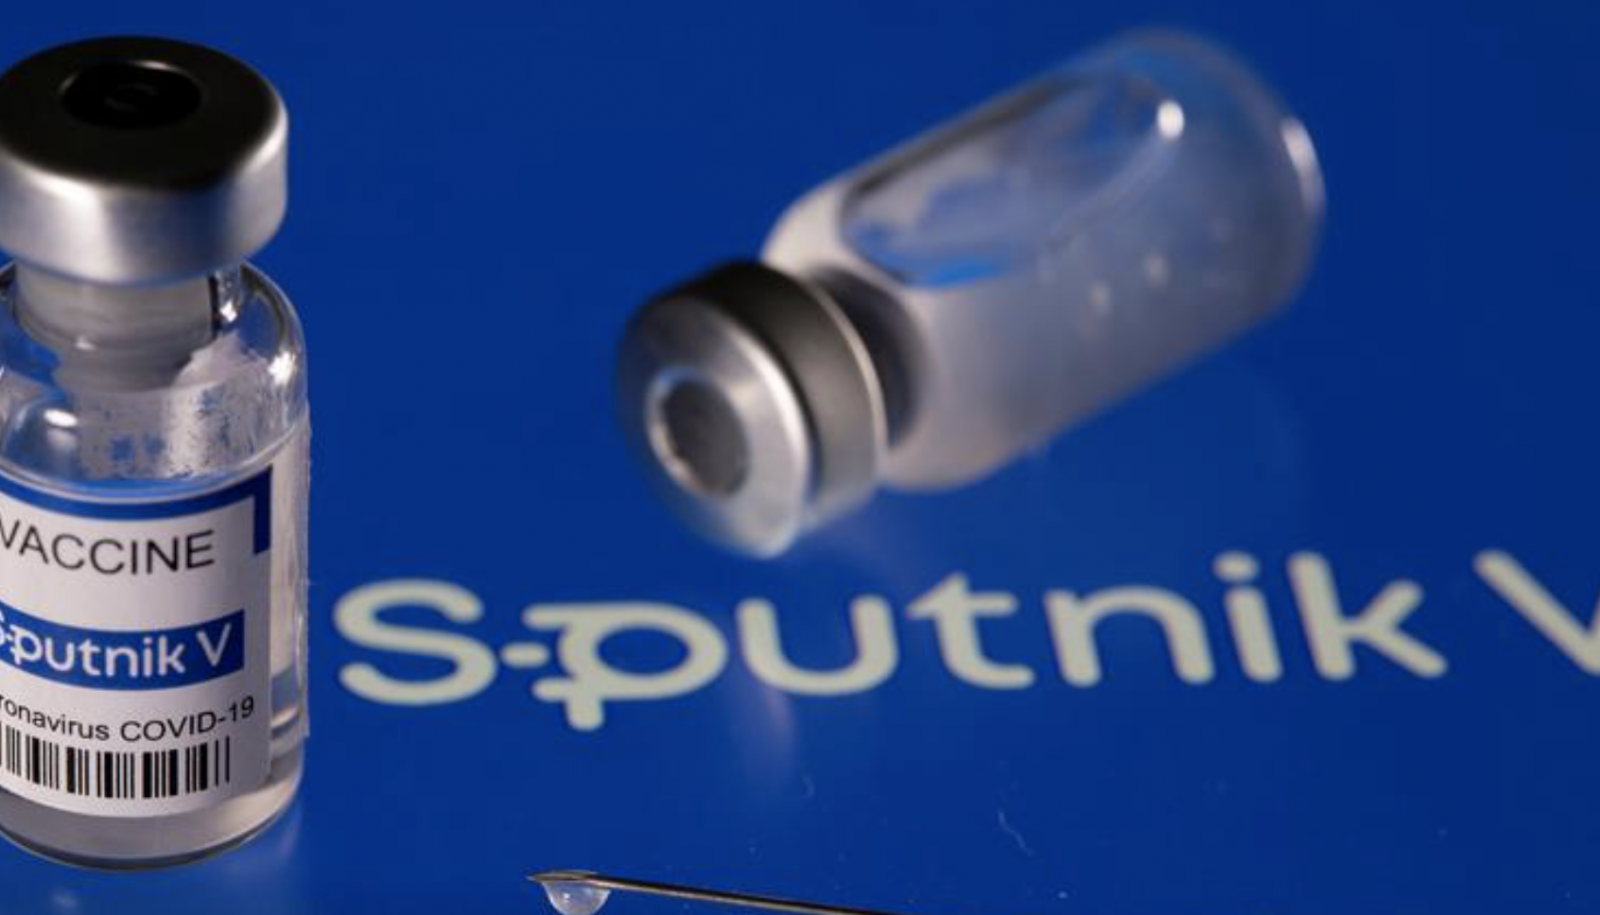 Reuters: Germany wants to buy Sputnik COVID vaccine if approved by EU